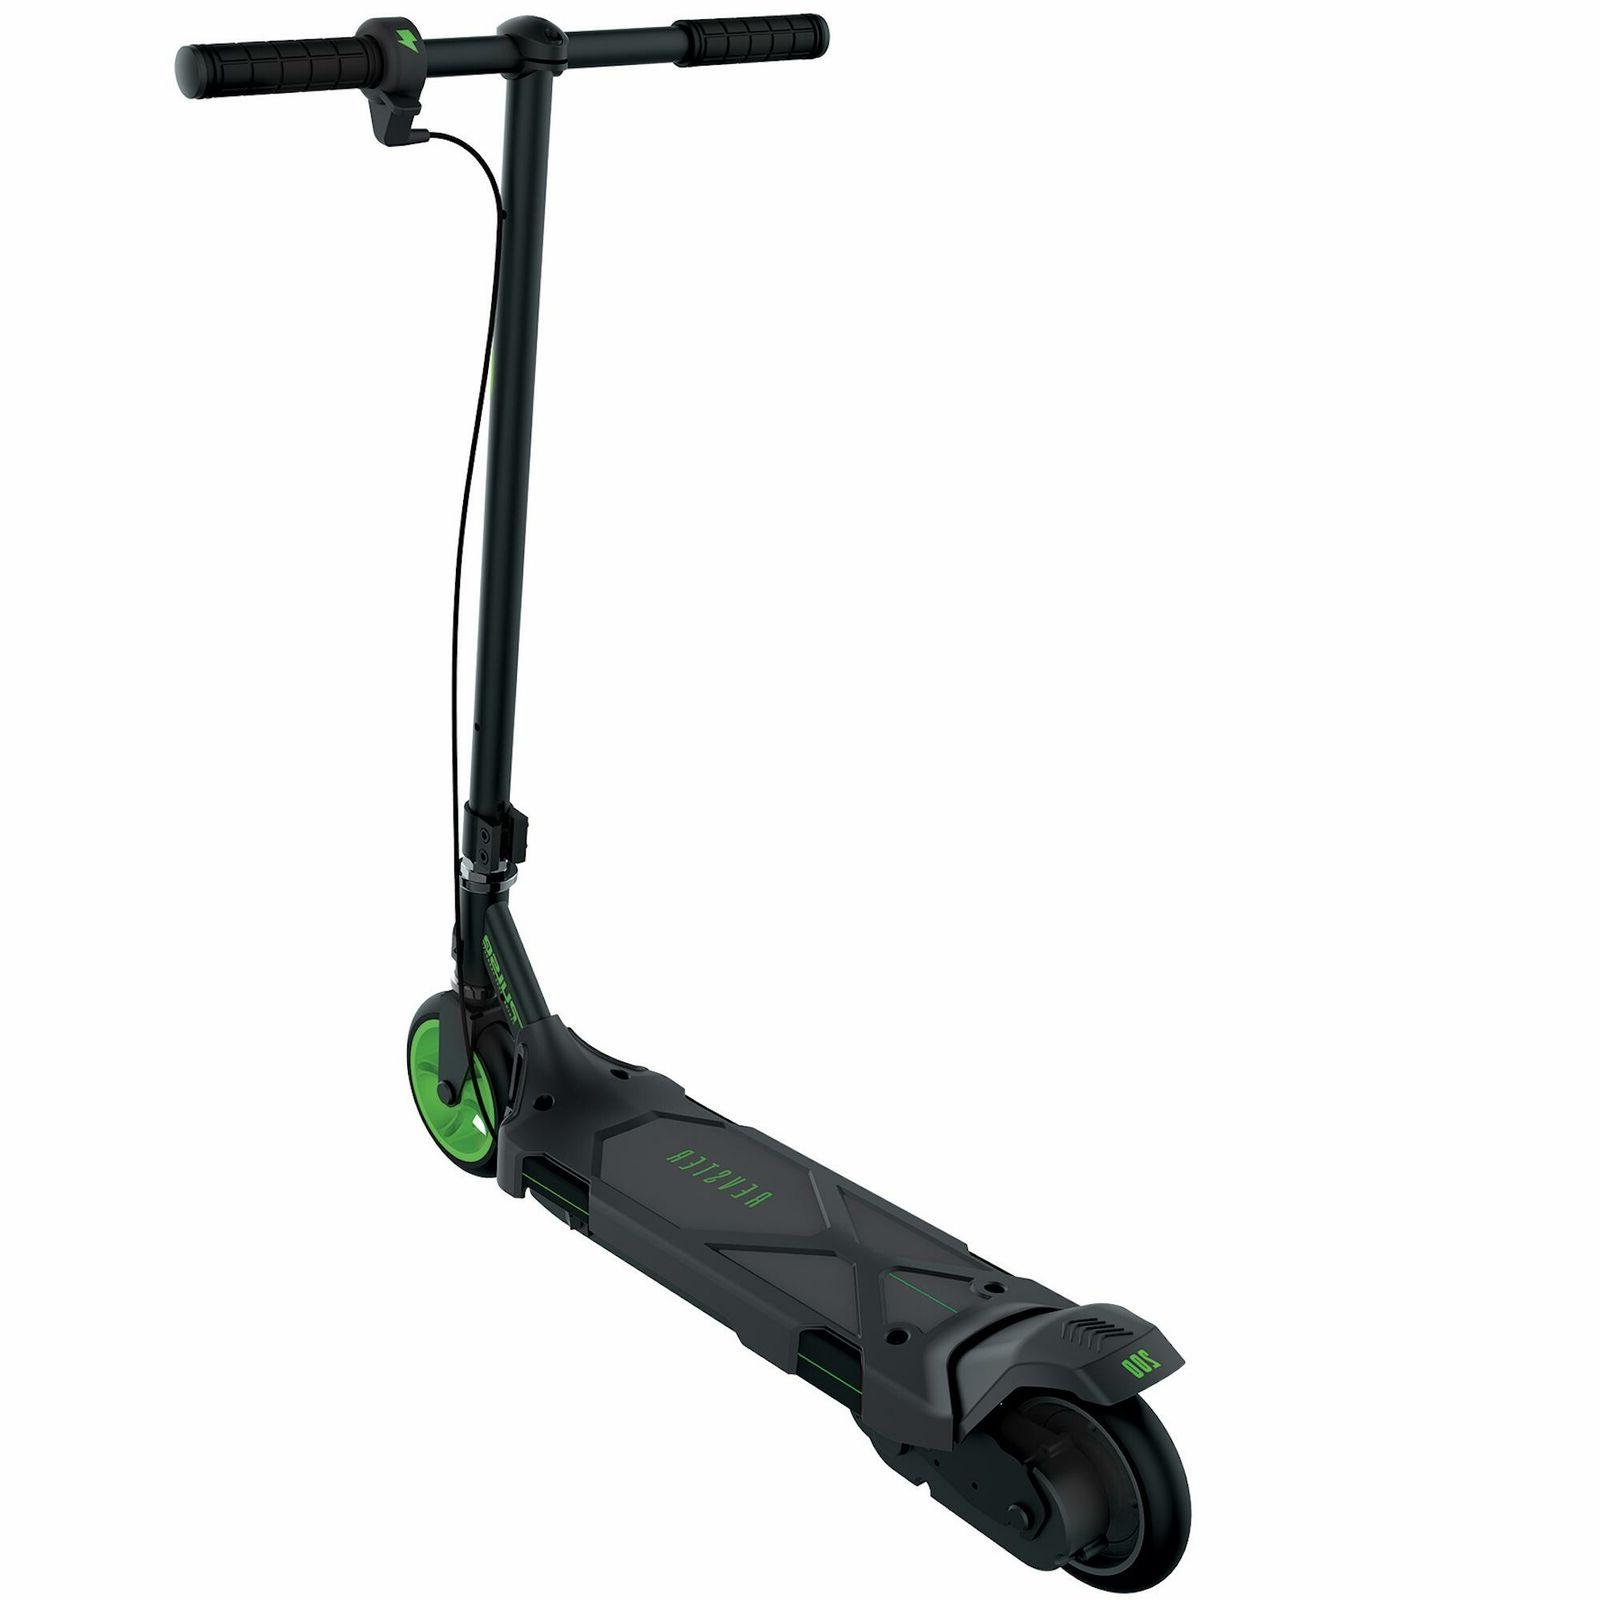 Revster 200 Electric Scooter Black Green Battery 8+ 2-in-1 Brake